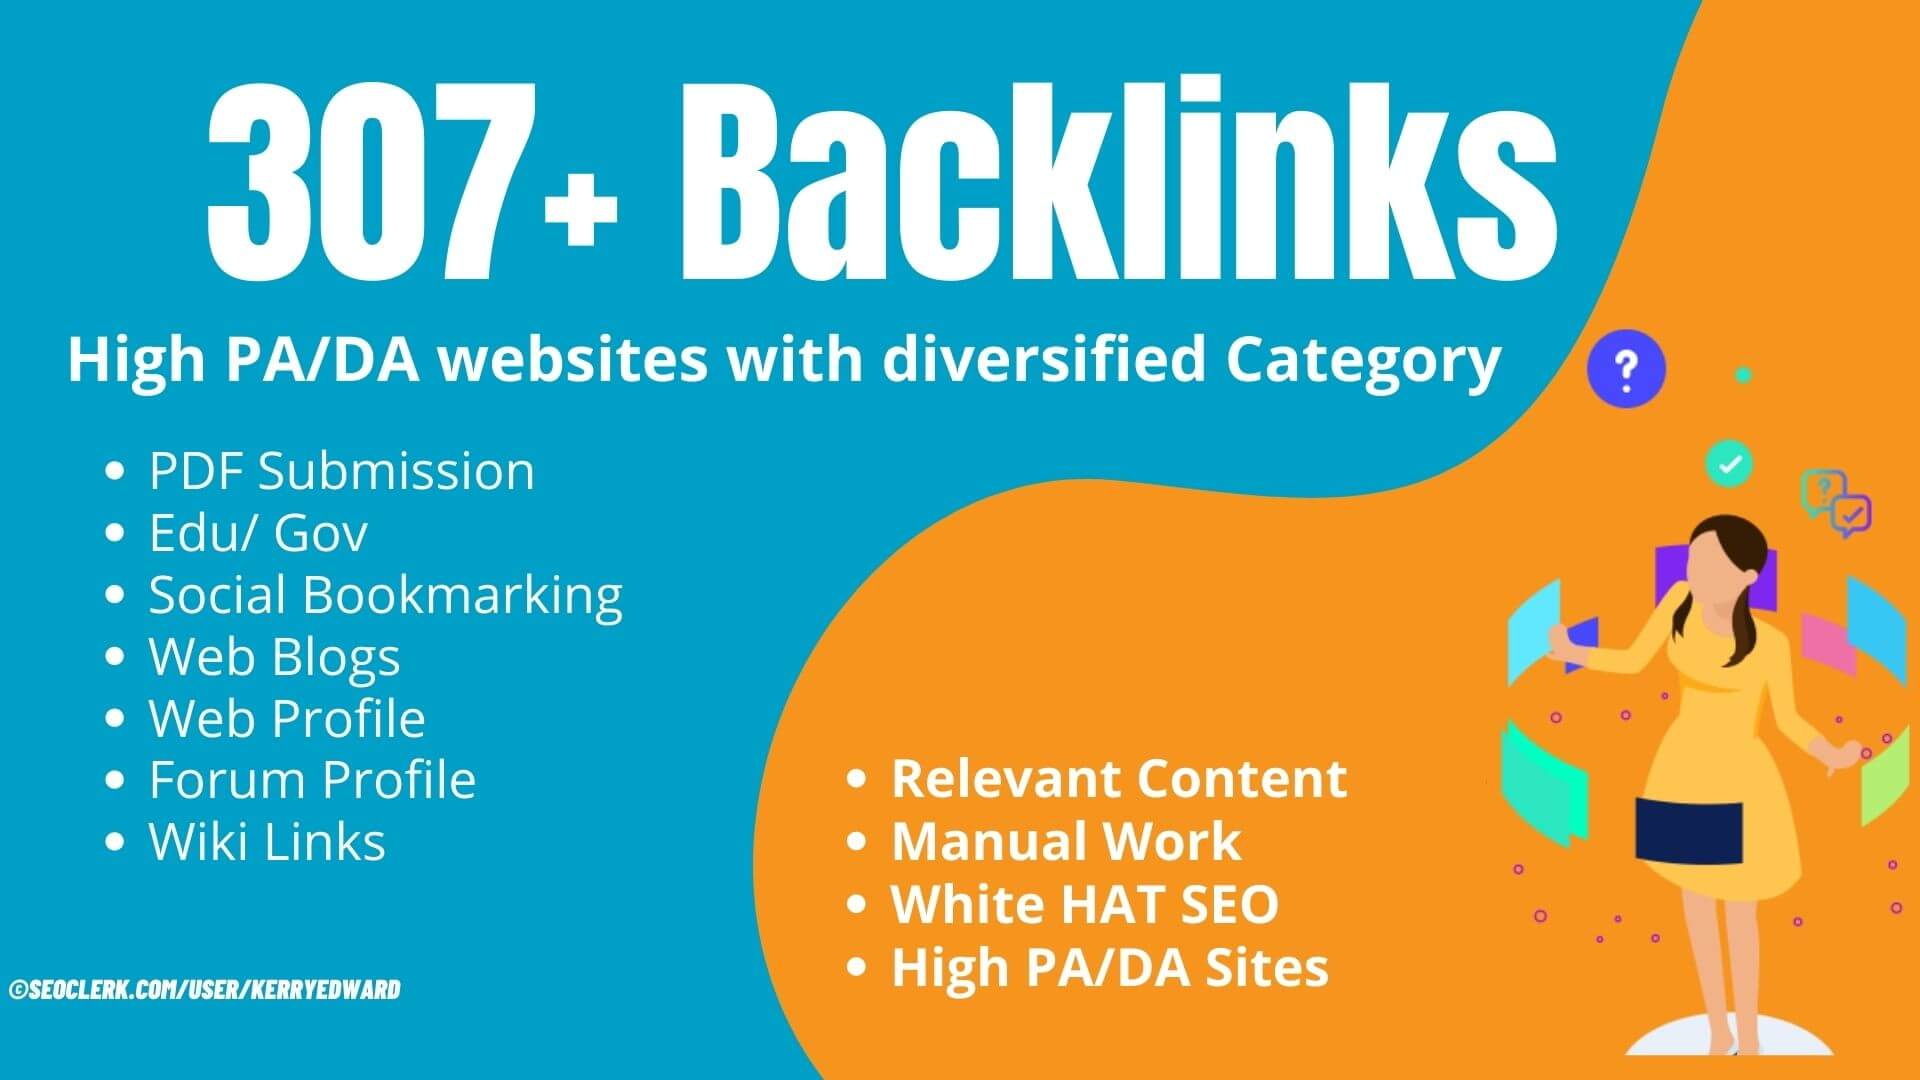 307+ Google friendly backlinks from diversified category to rank first on Google